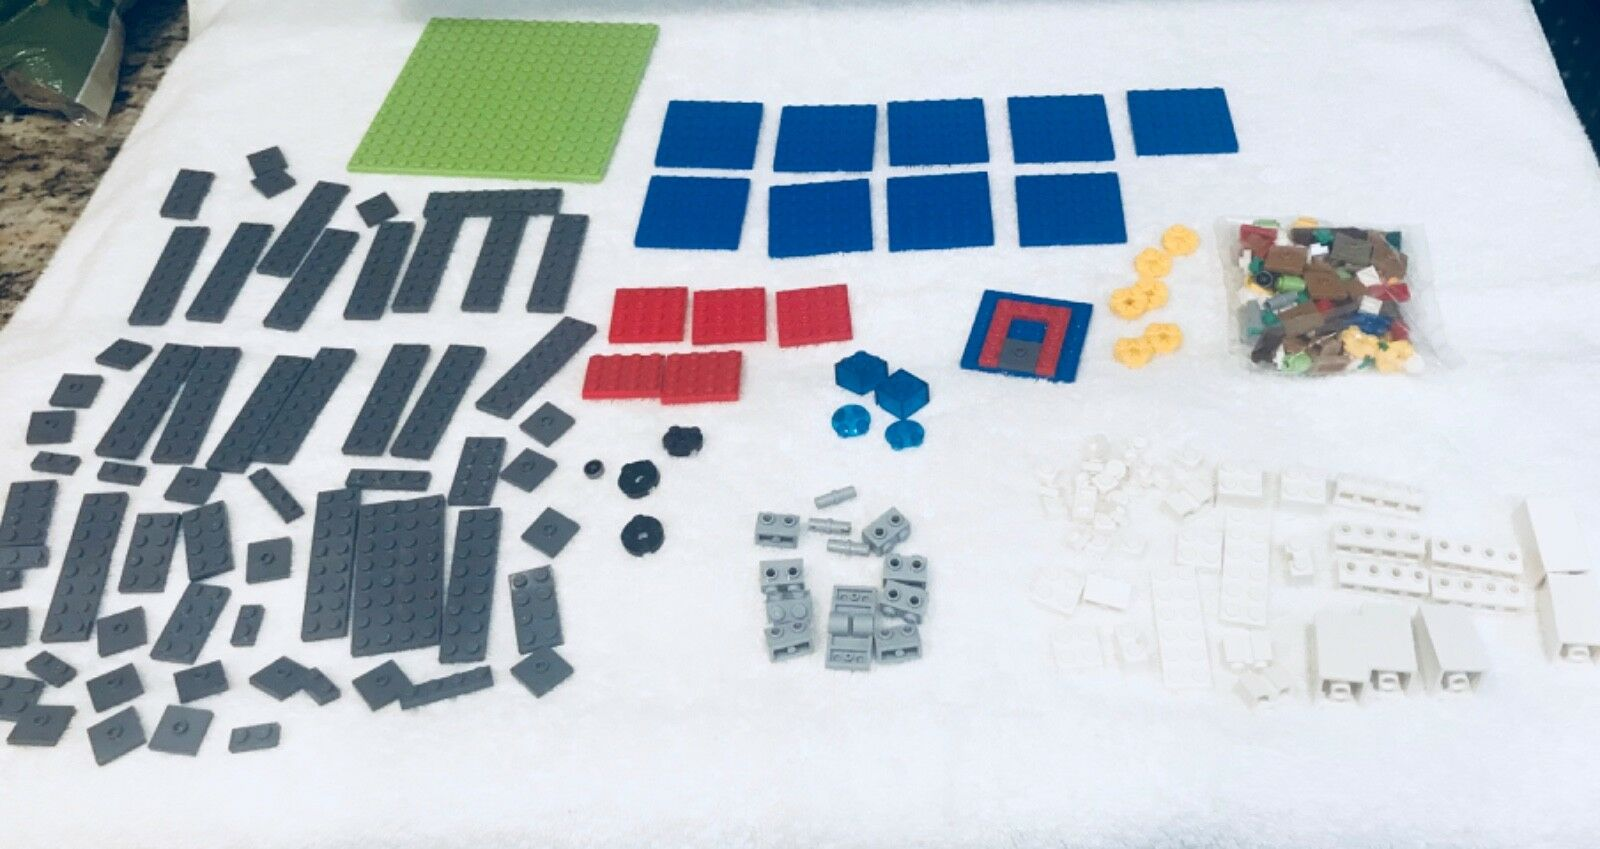 Legos  Large set of over 400 pieces MINECRAFT building set. Rare.